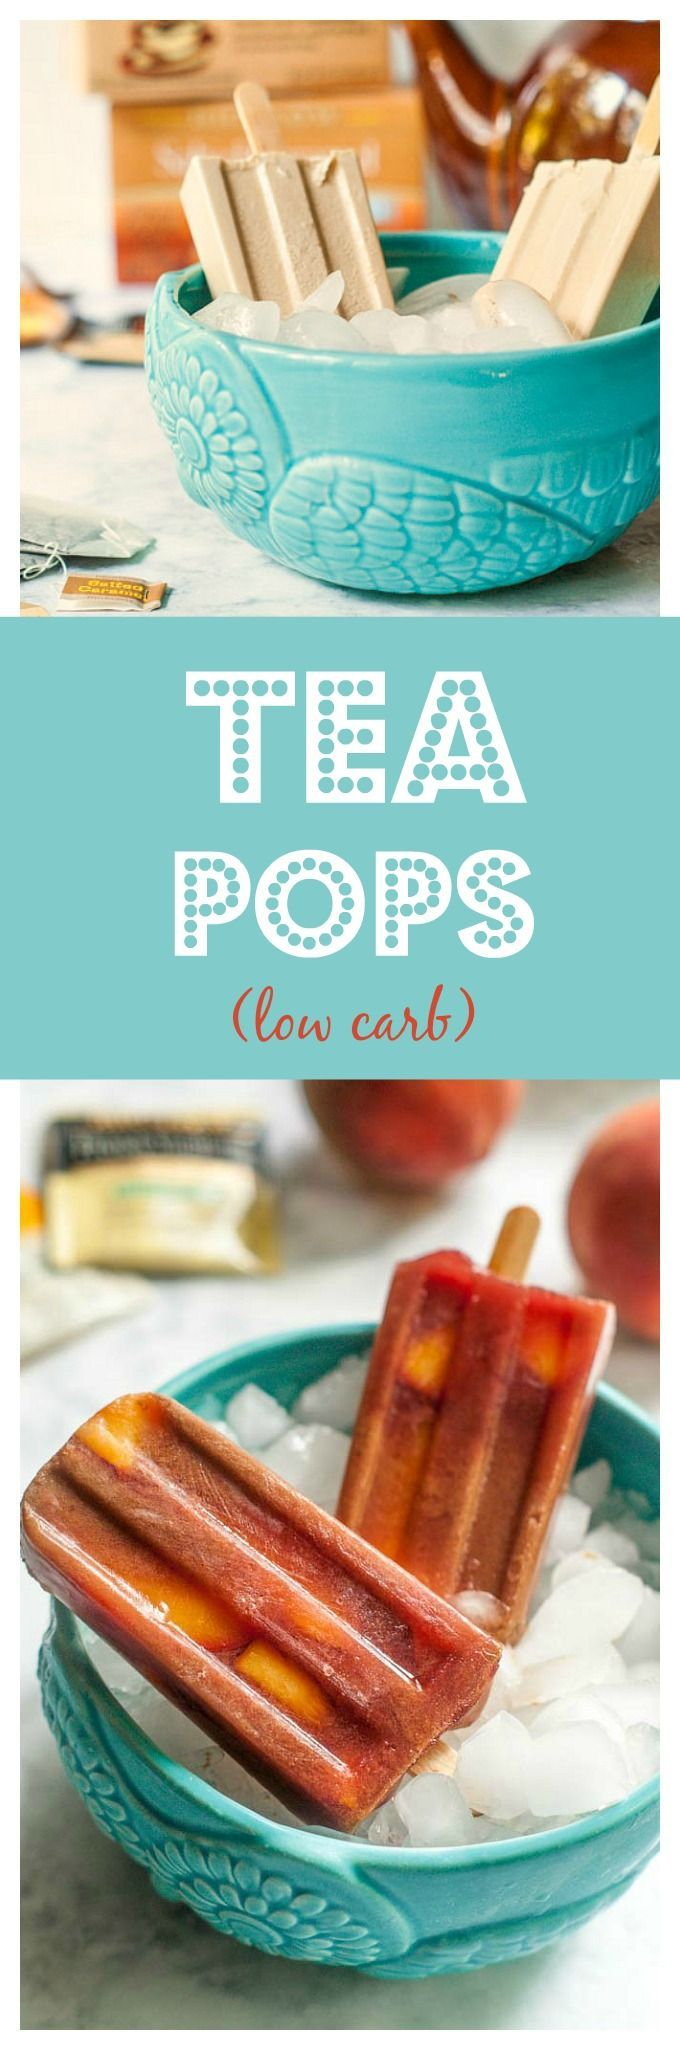 Low carb tea pops - a healthy, tasty treat 1.7 carbs #ad #TeaProudly